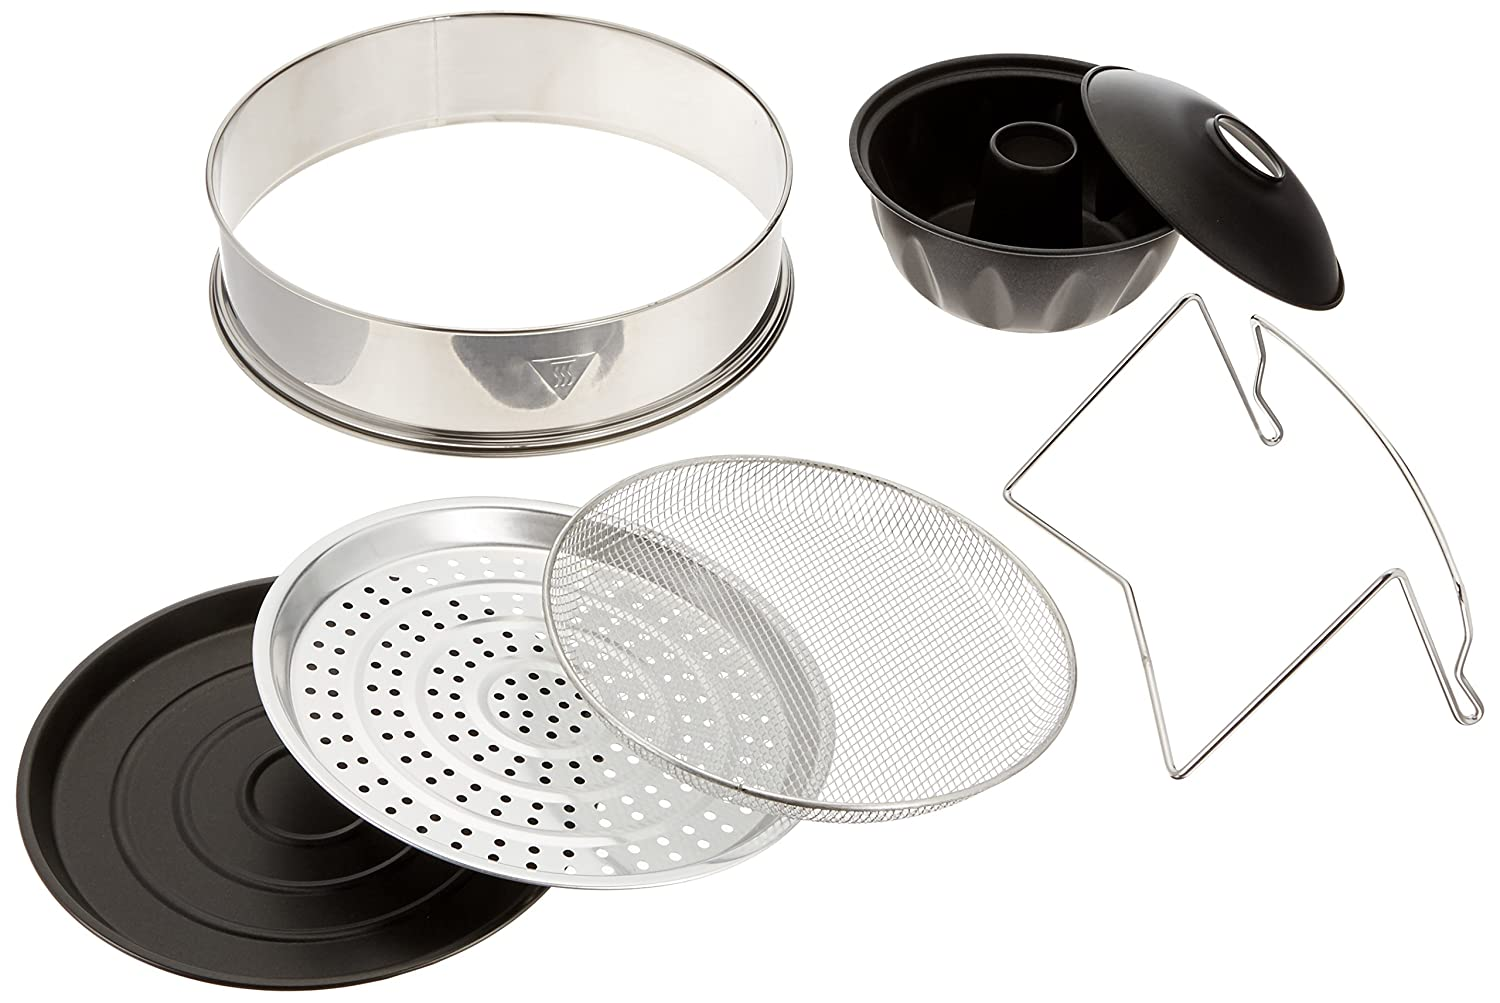 Oyama Turbo Oven Accessory Deluxe Package with Extender Ring, Bundt Cake Pan, Stainless wire mesh, Steamer pan, Grill pan, and Turbo lid stand